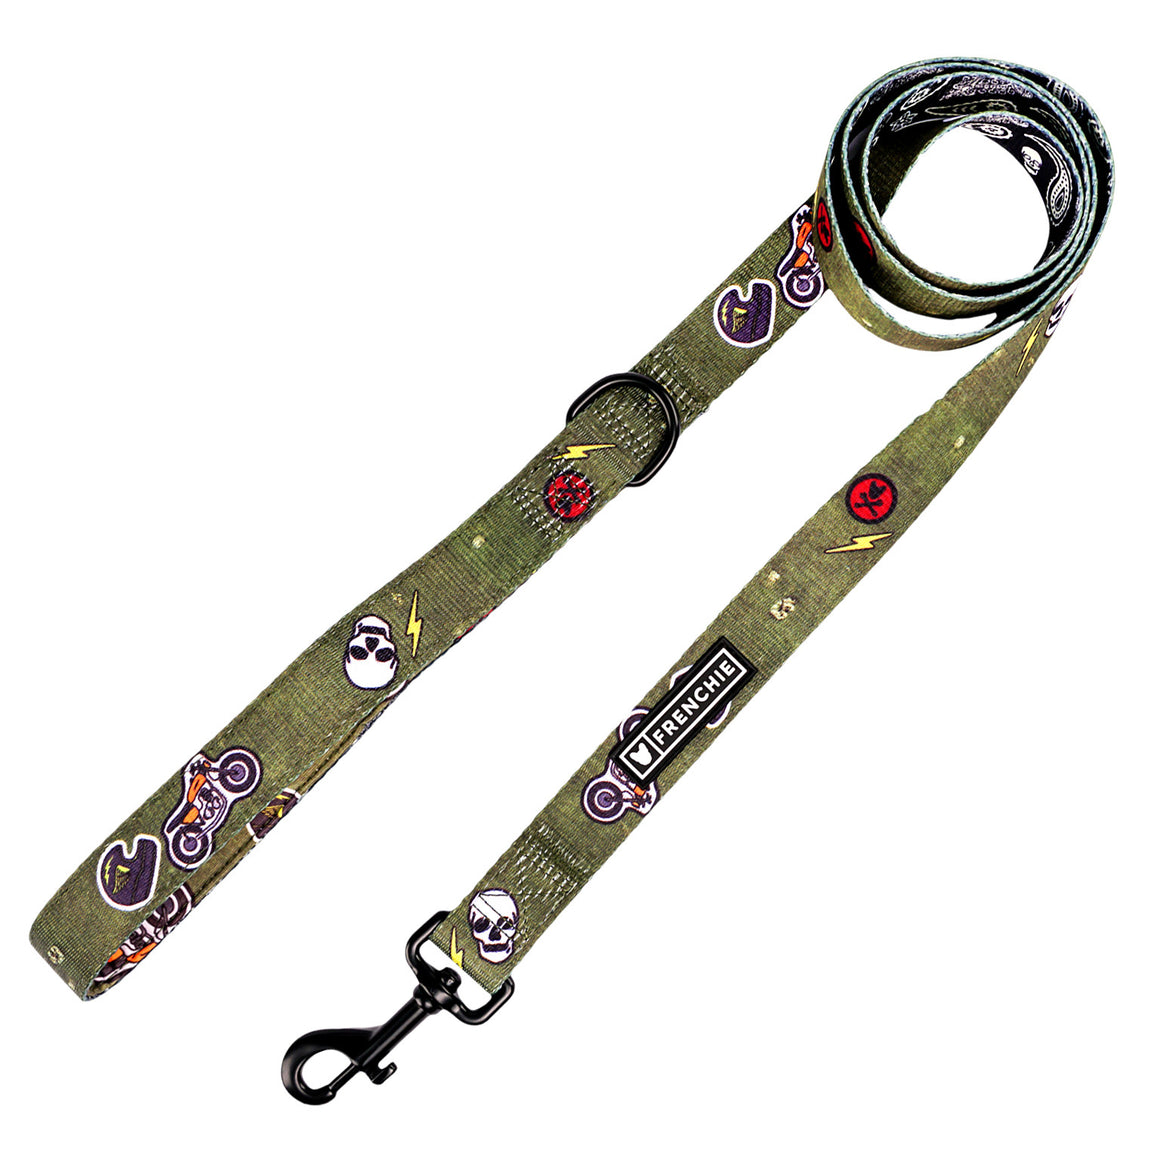 Frenchie Comfort Leash - Ruff Rider